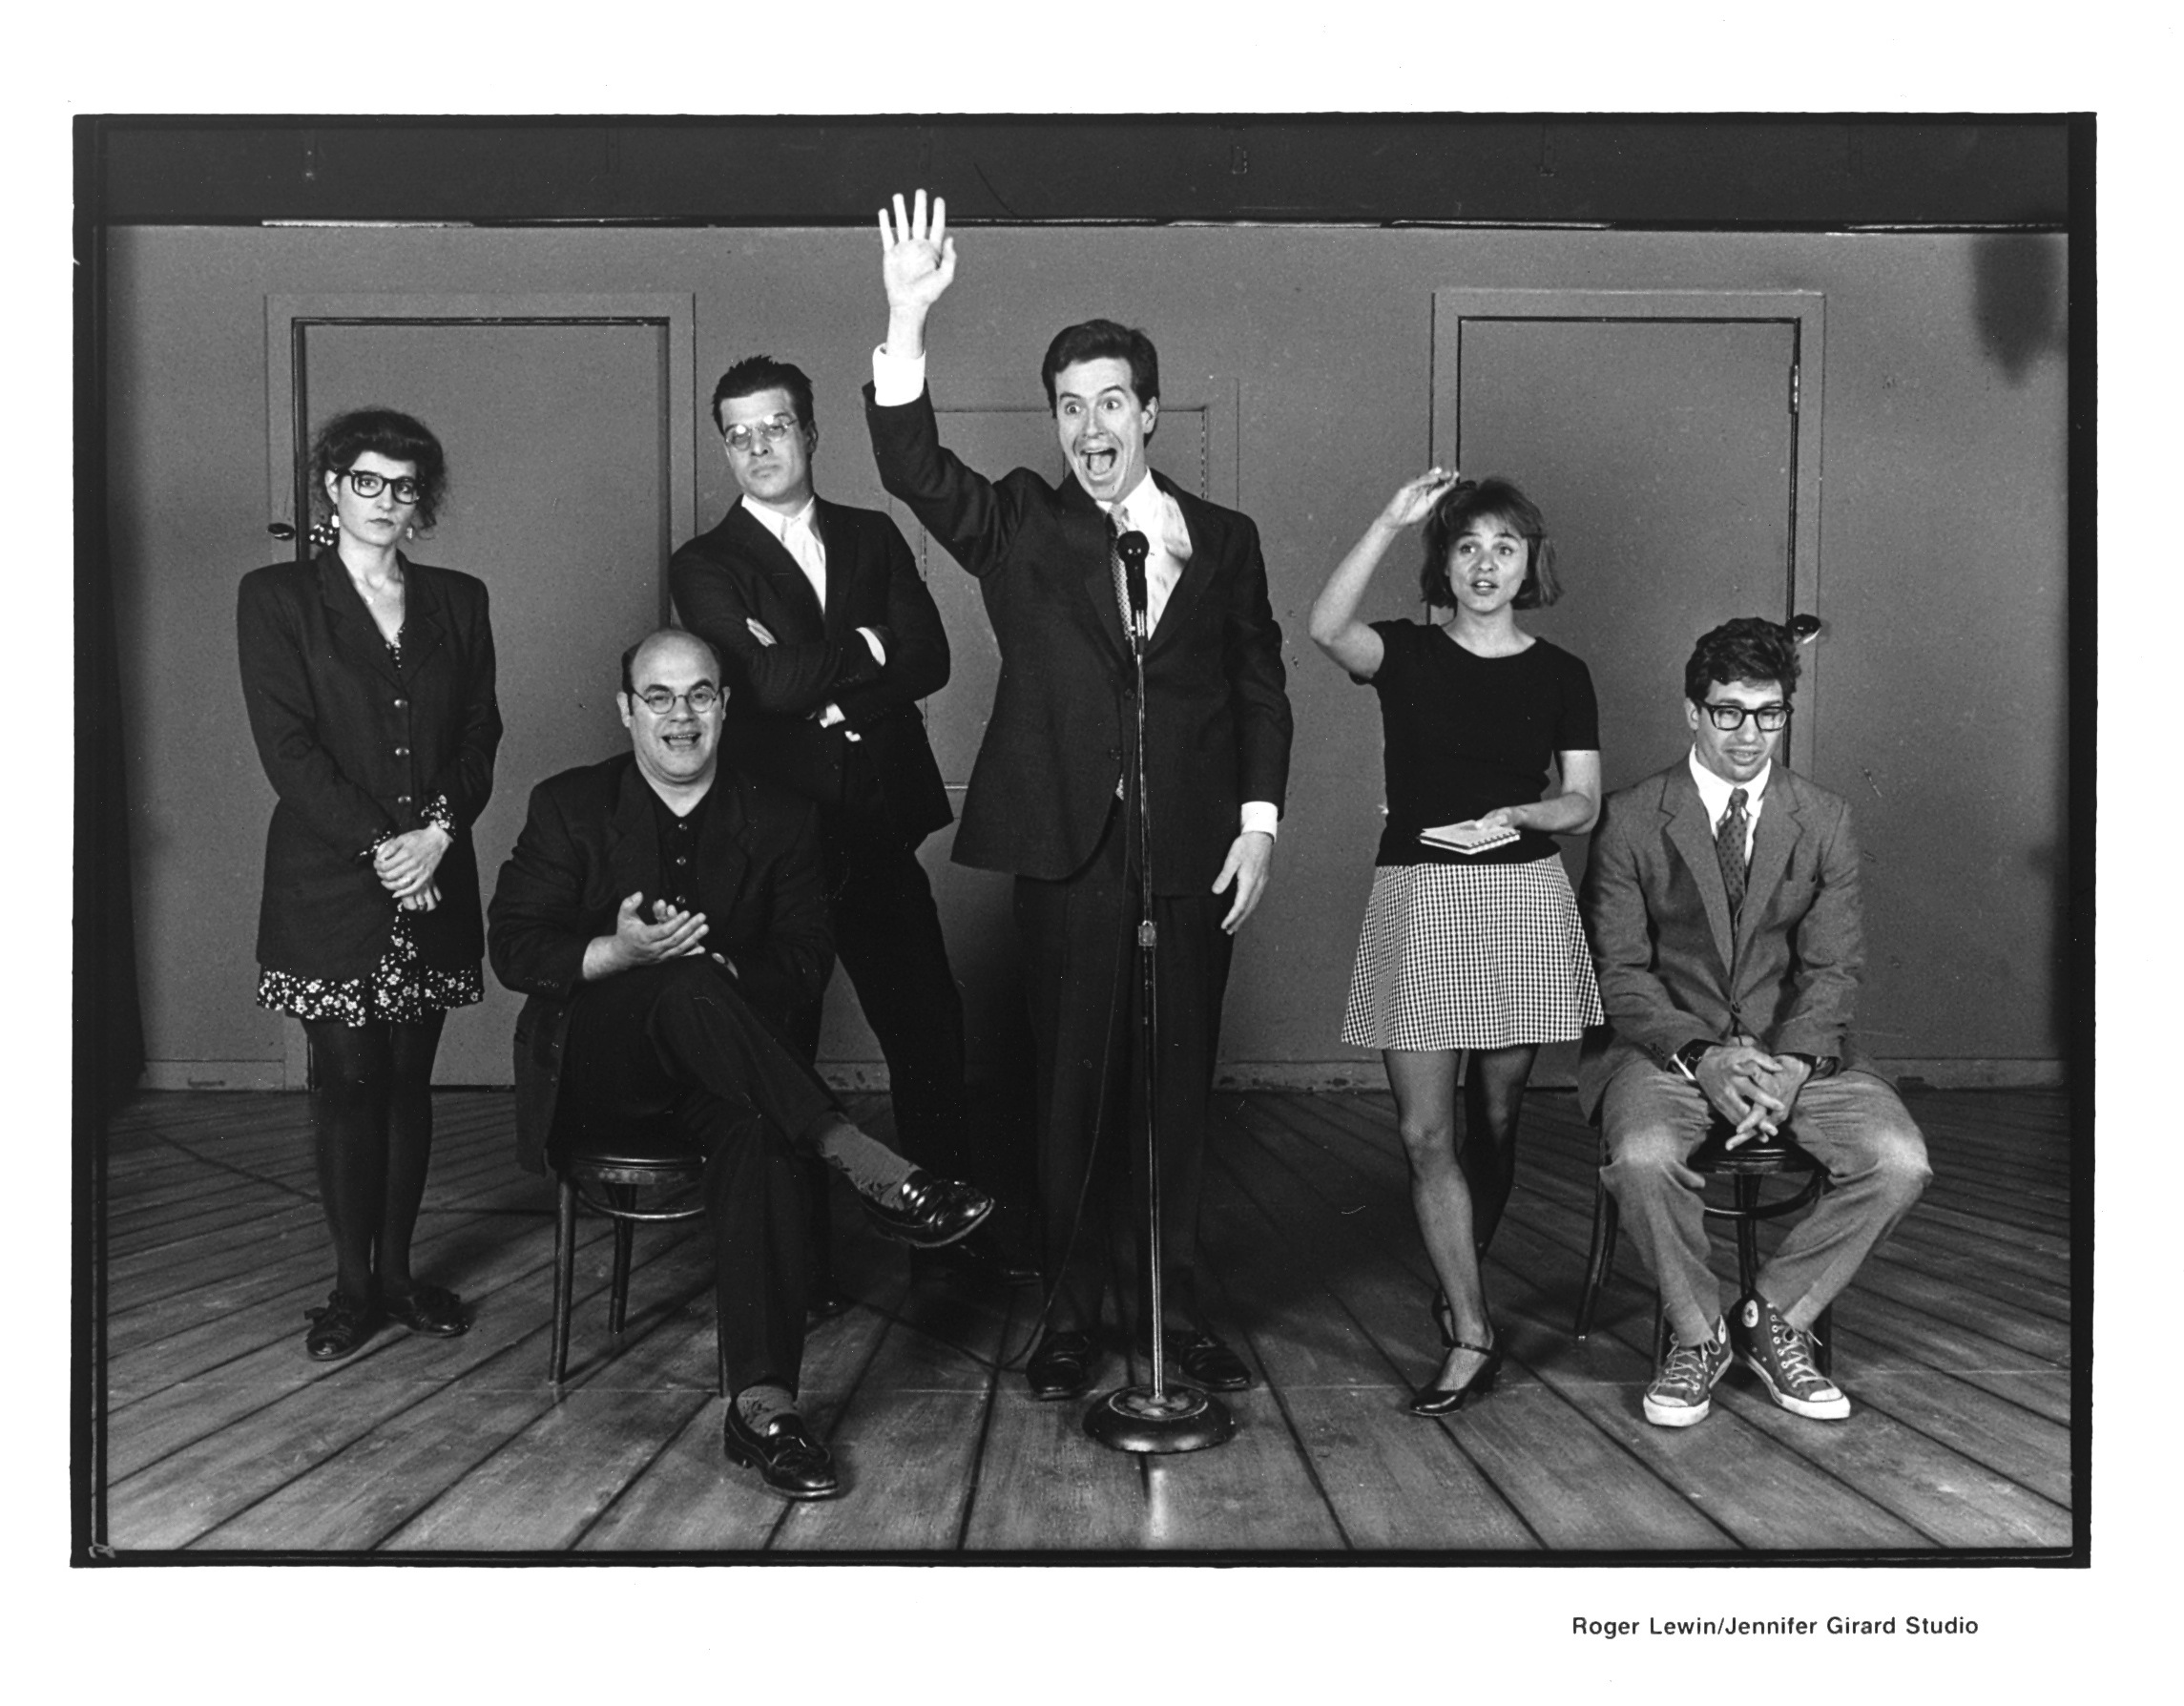 The cast of Second City Northwest's <i>Destiny and How to Avoid It</i>: Nia Vardalos, Ian Gomez, Mitch Rouse, Colbert, Amy Sedaris, and Paul Dinello